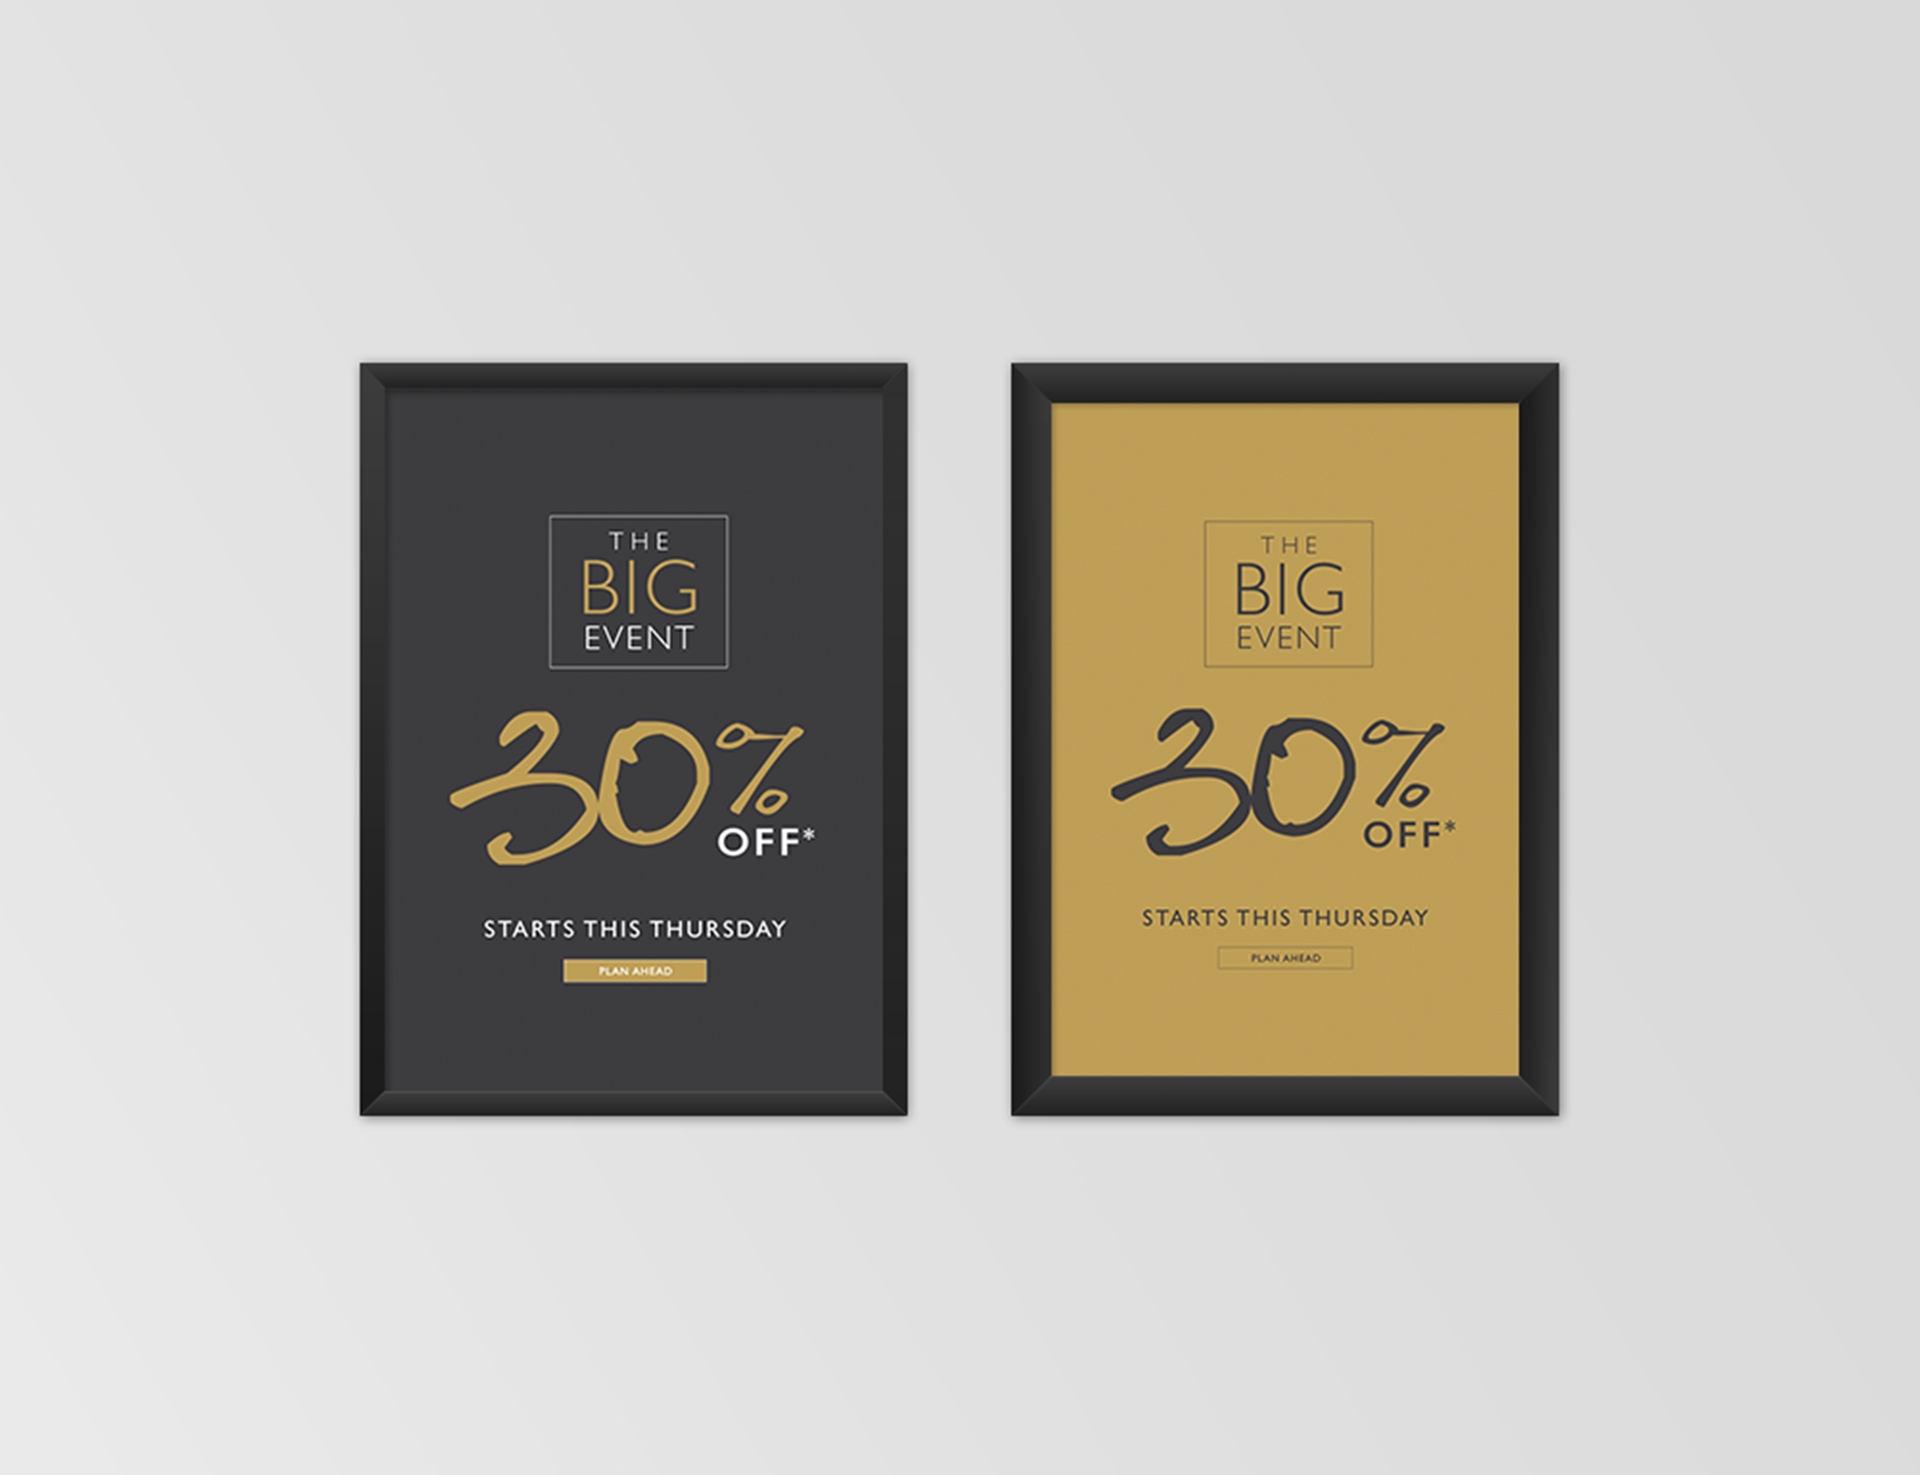 THE BIG EVENT:  In-store advertising